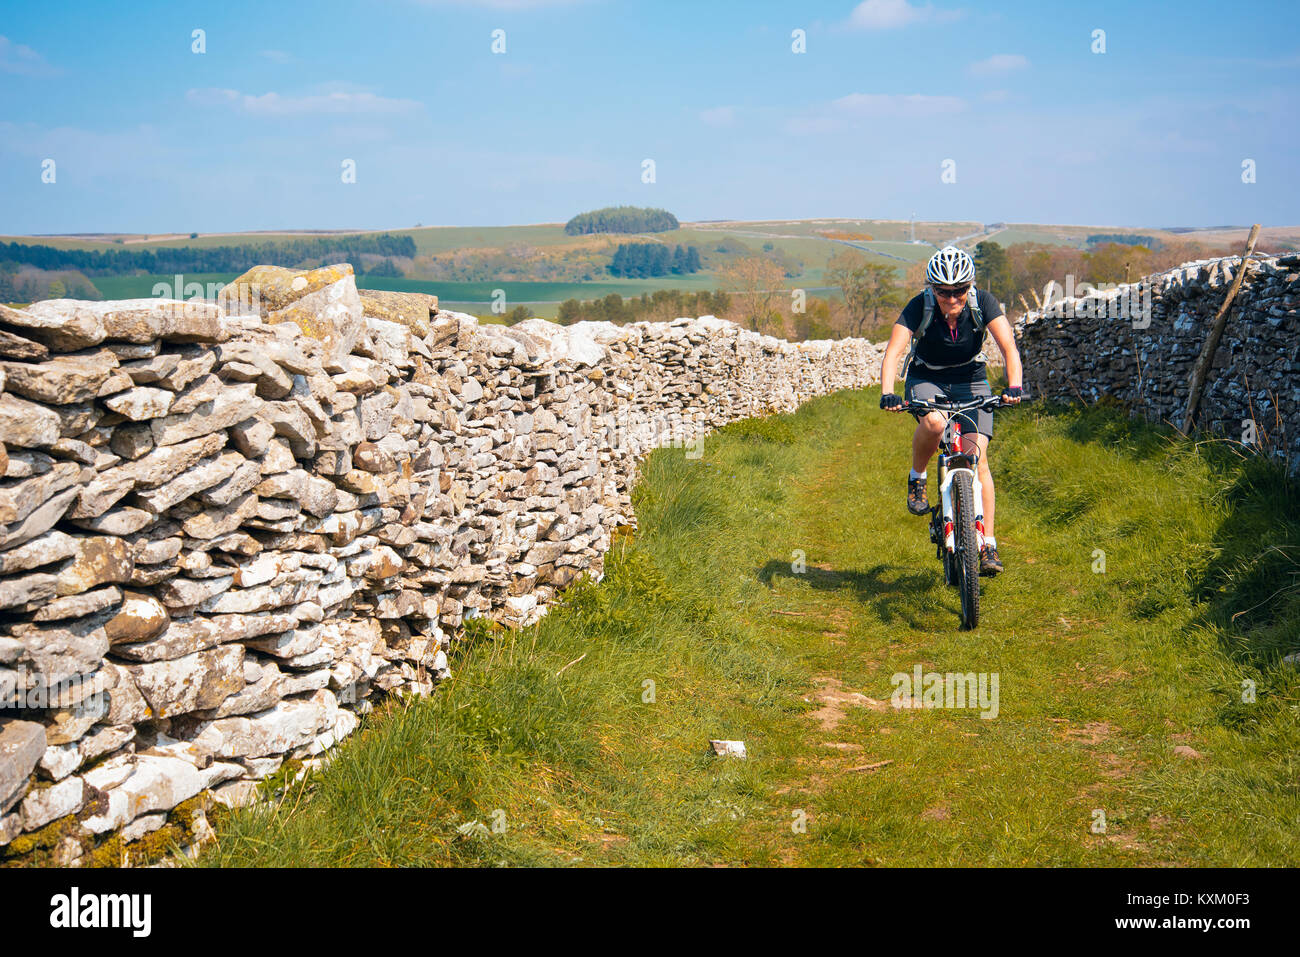 Female mountain biker on easy trail near Newbiggin-on-Lune, Cumbria - Stock Image